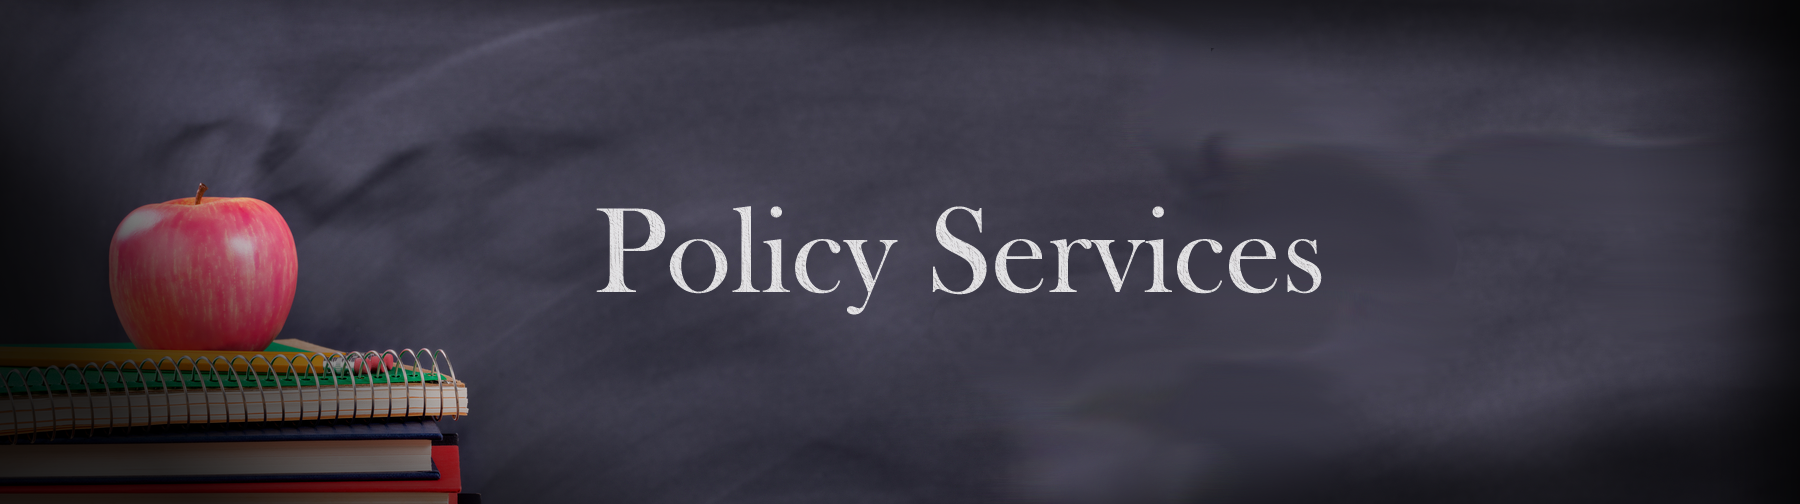 Policy Services Writen on Chalk Board